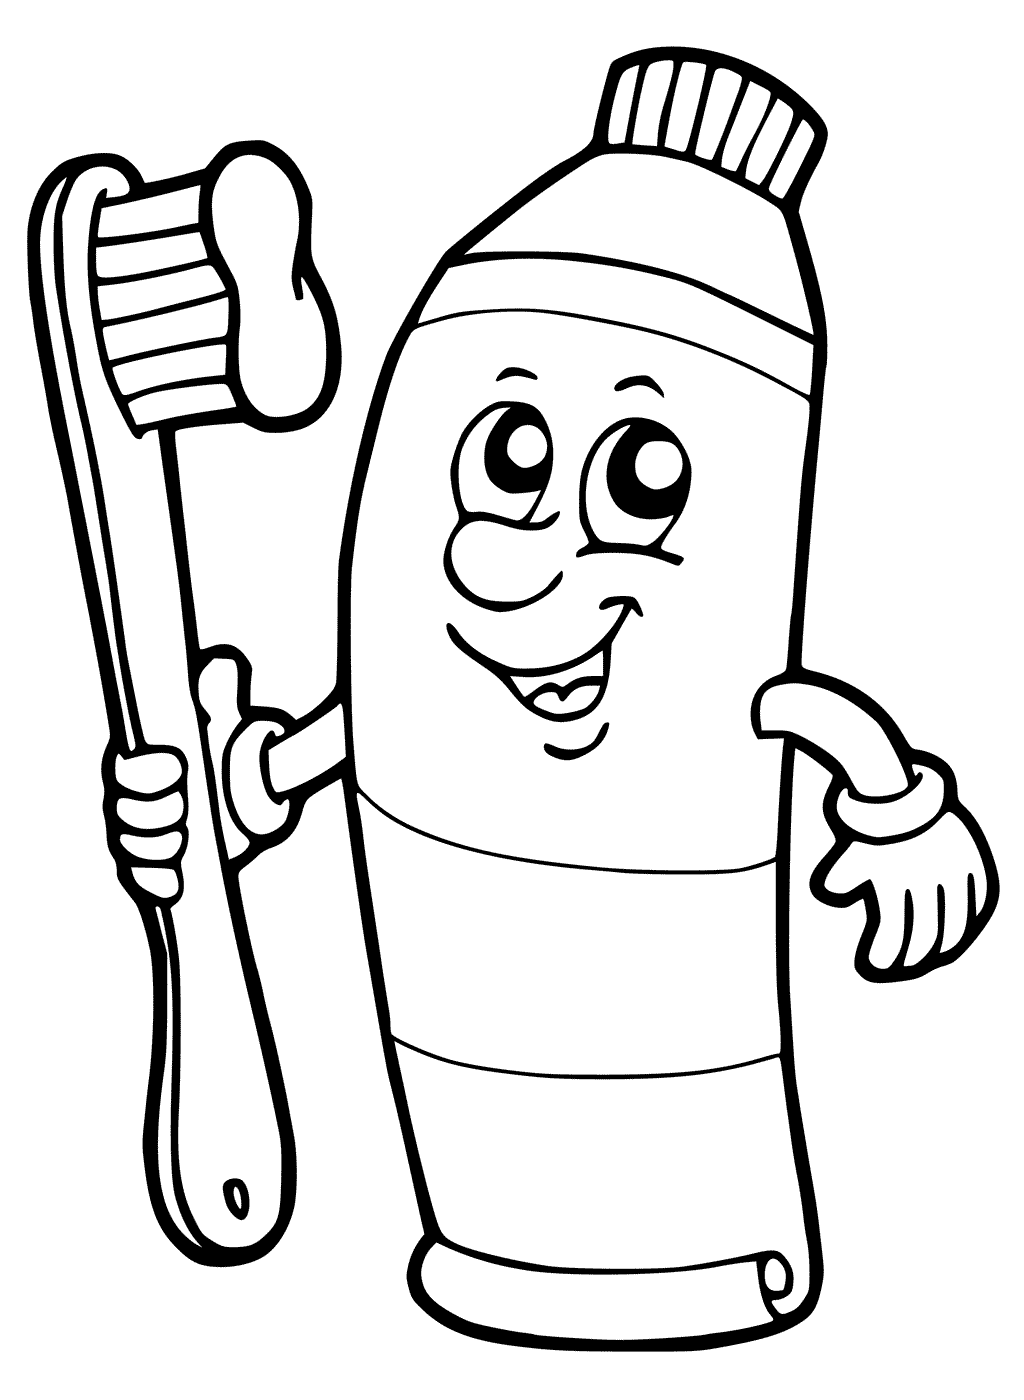 Toothbrush And Toothpaste Drawing At Getdrawings